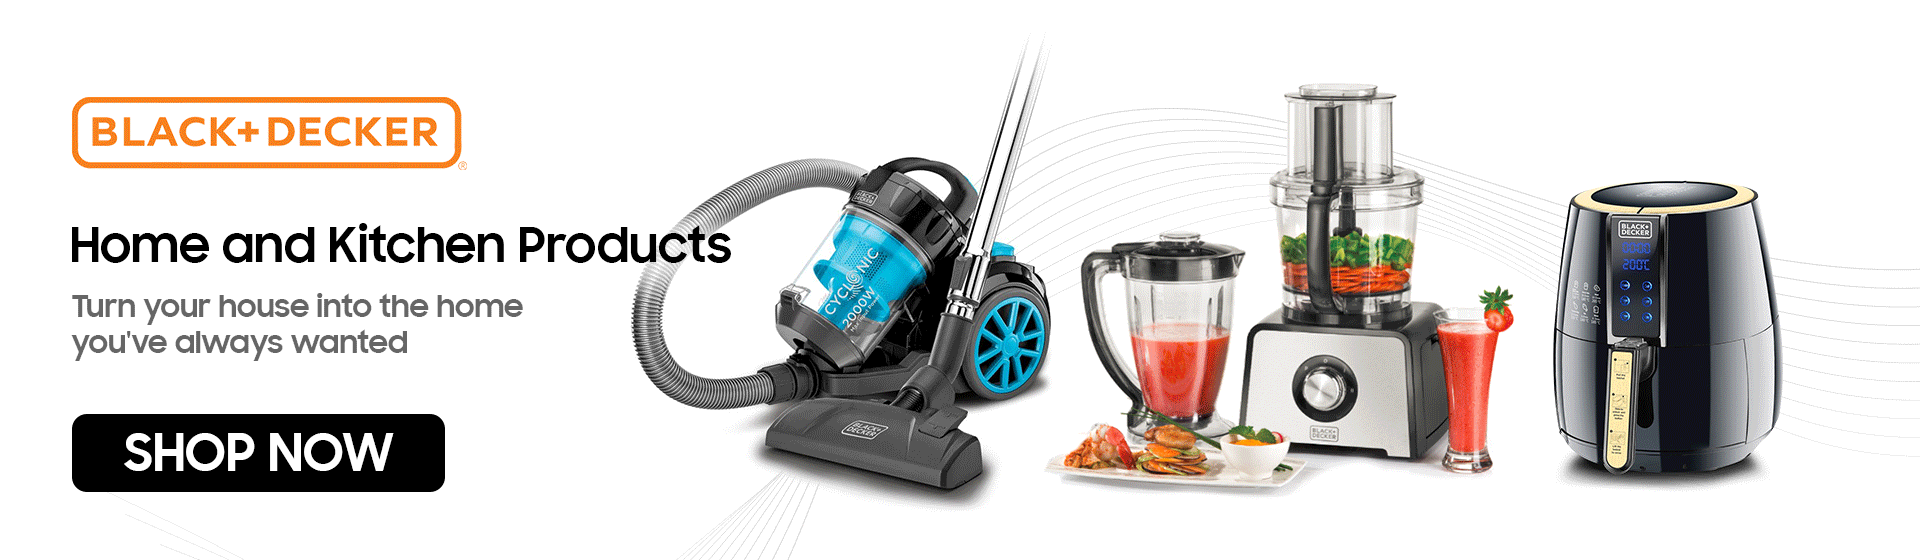 Black and Decker | Home and Kitchen Products